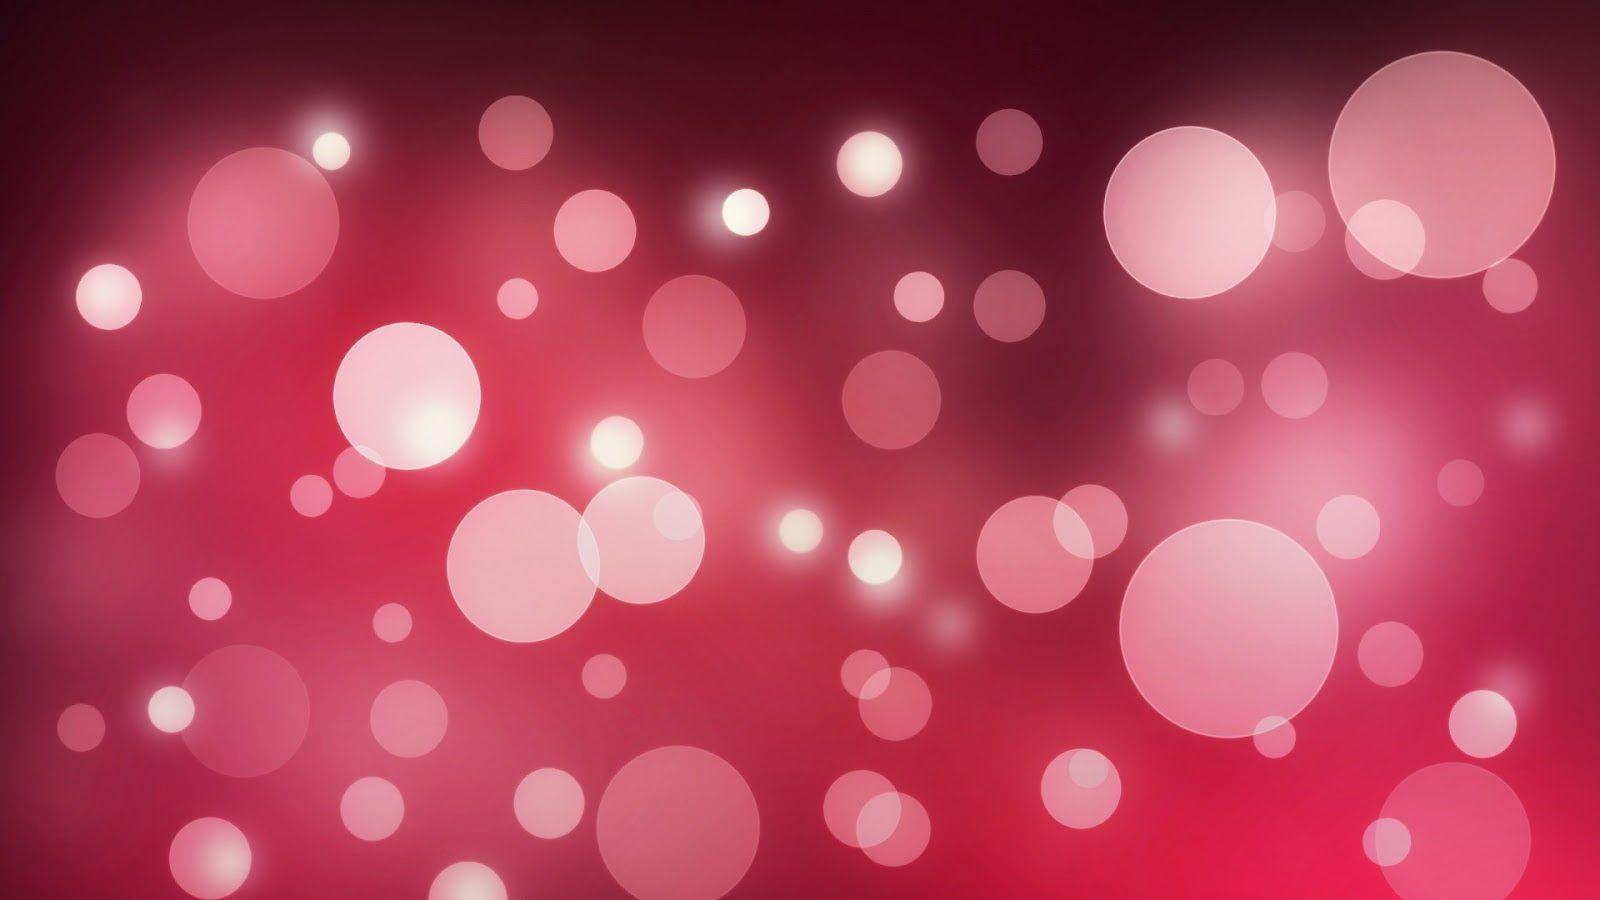 light pink star wallpaper - photo #35